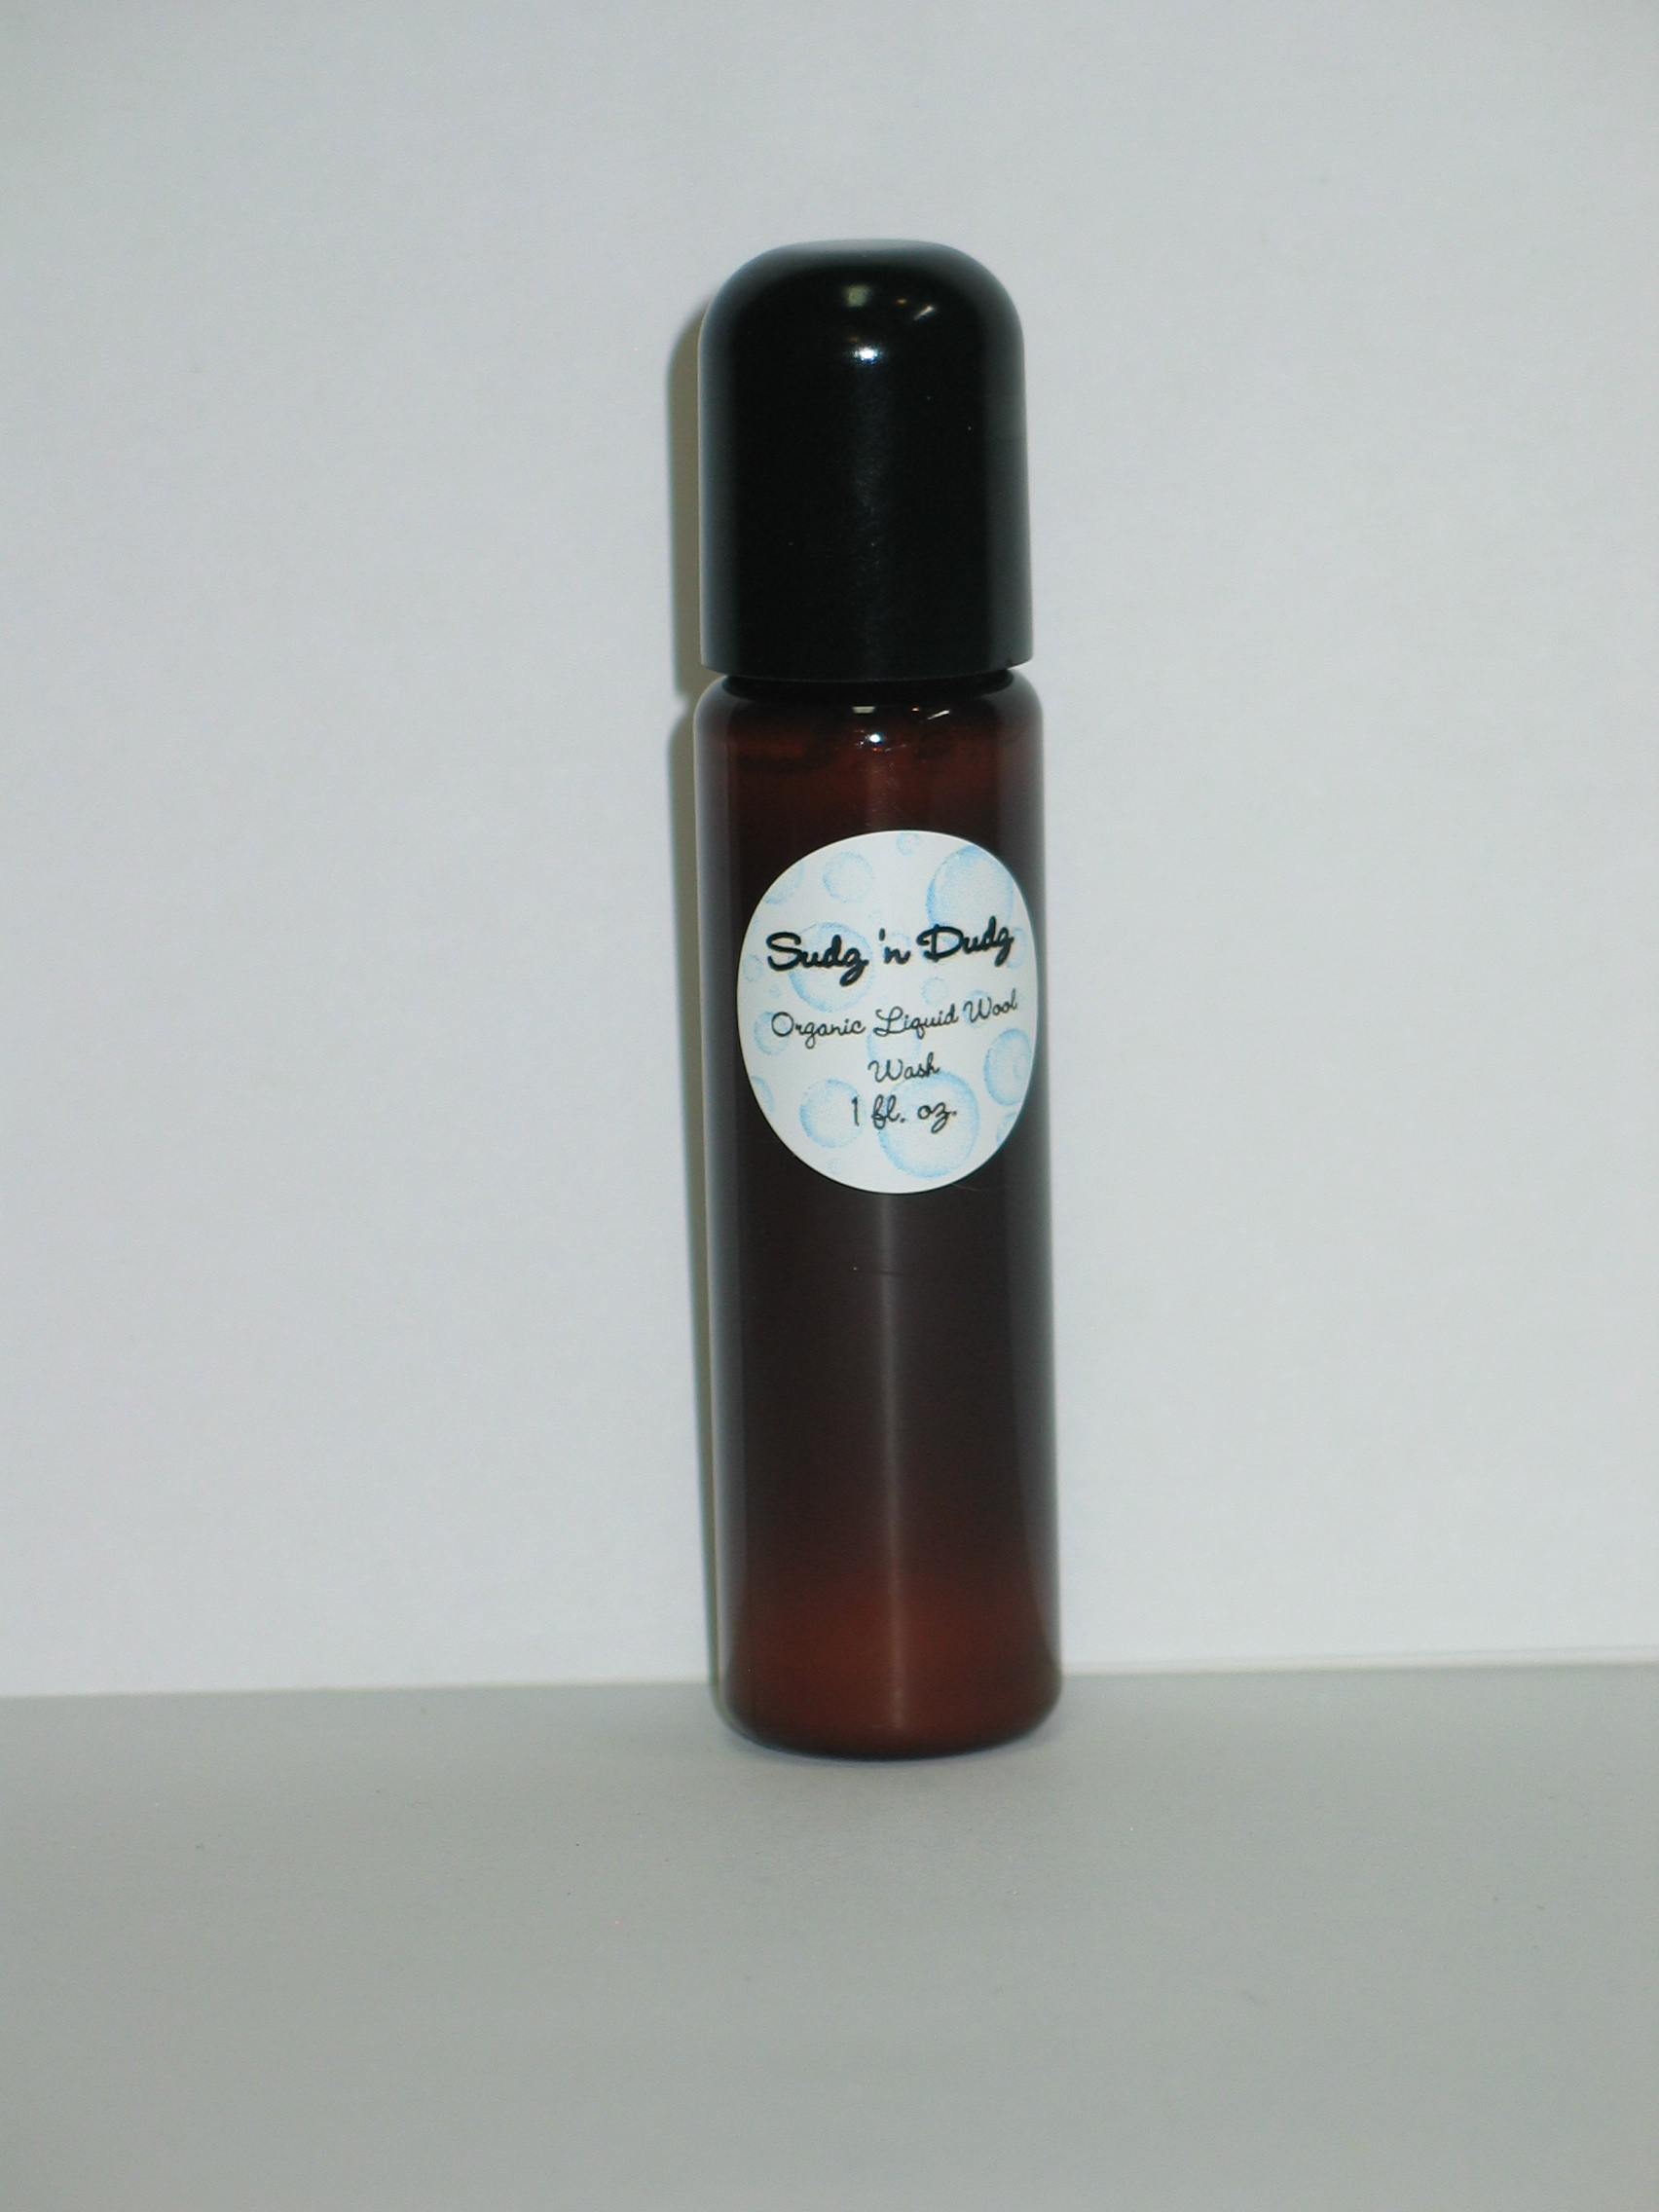 Sudz 'n Dudz Organic Liquid Wool Wash Sample